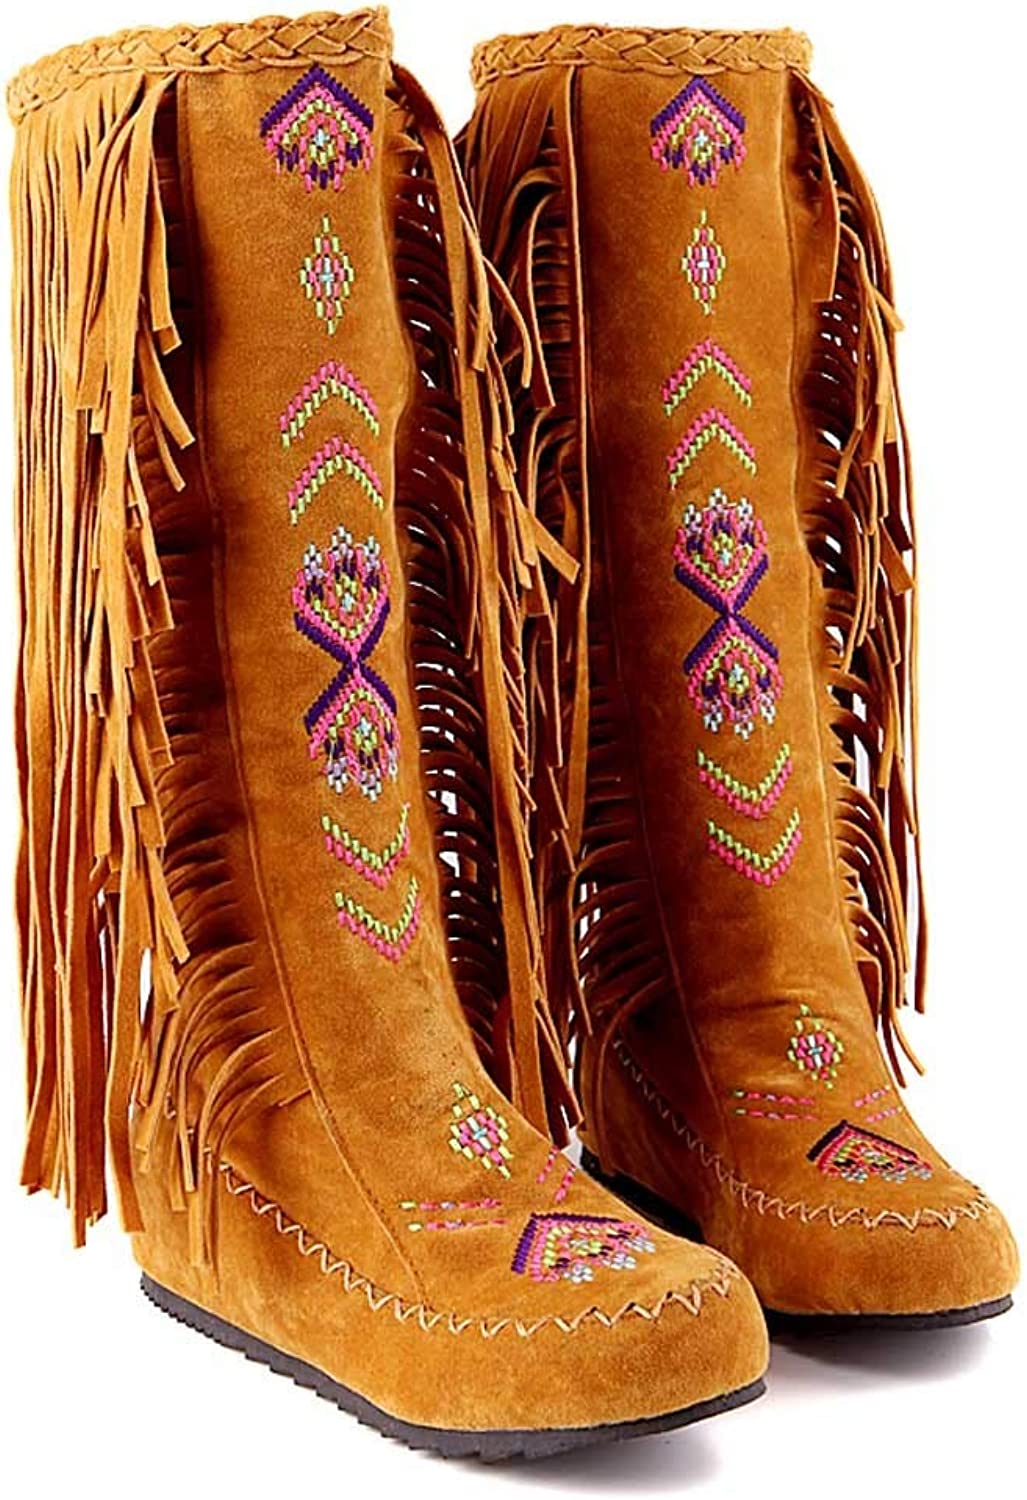 Fashion Women Ethnic Style Embroidery Retro Fringe Boots, Flat Heels Long Boots Winter Knee High Boots